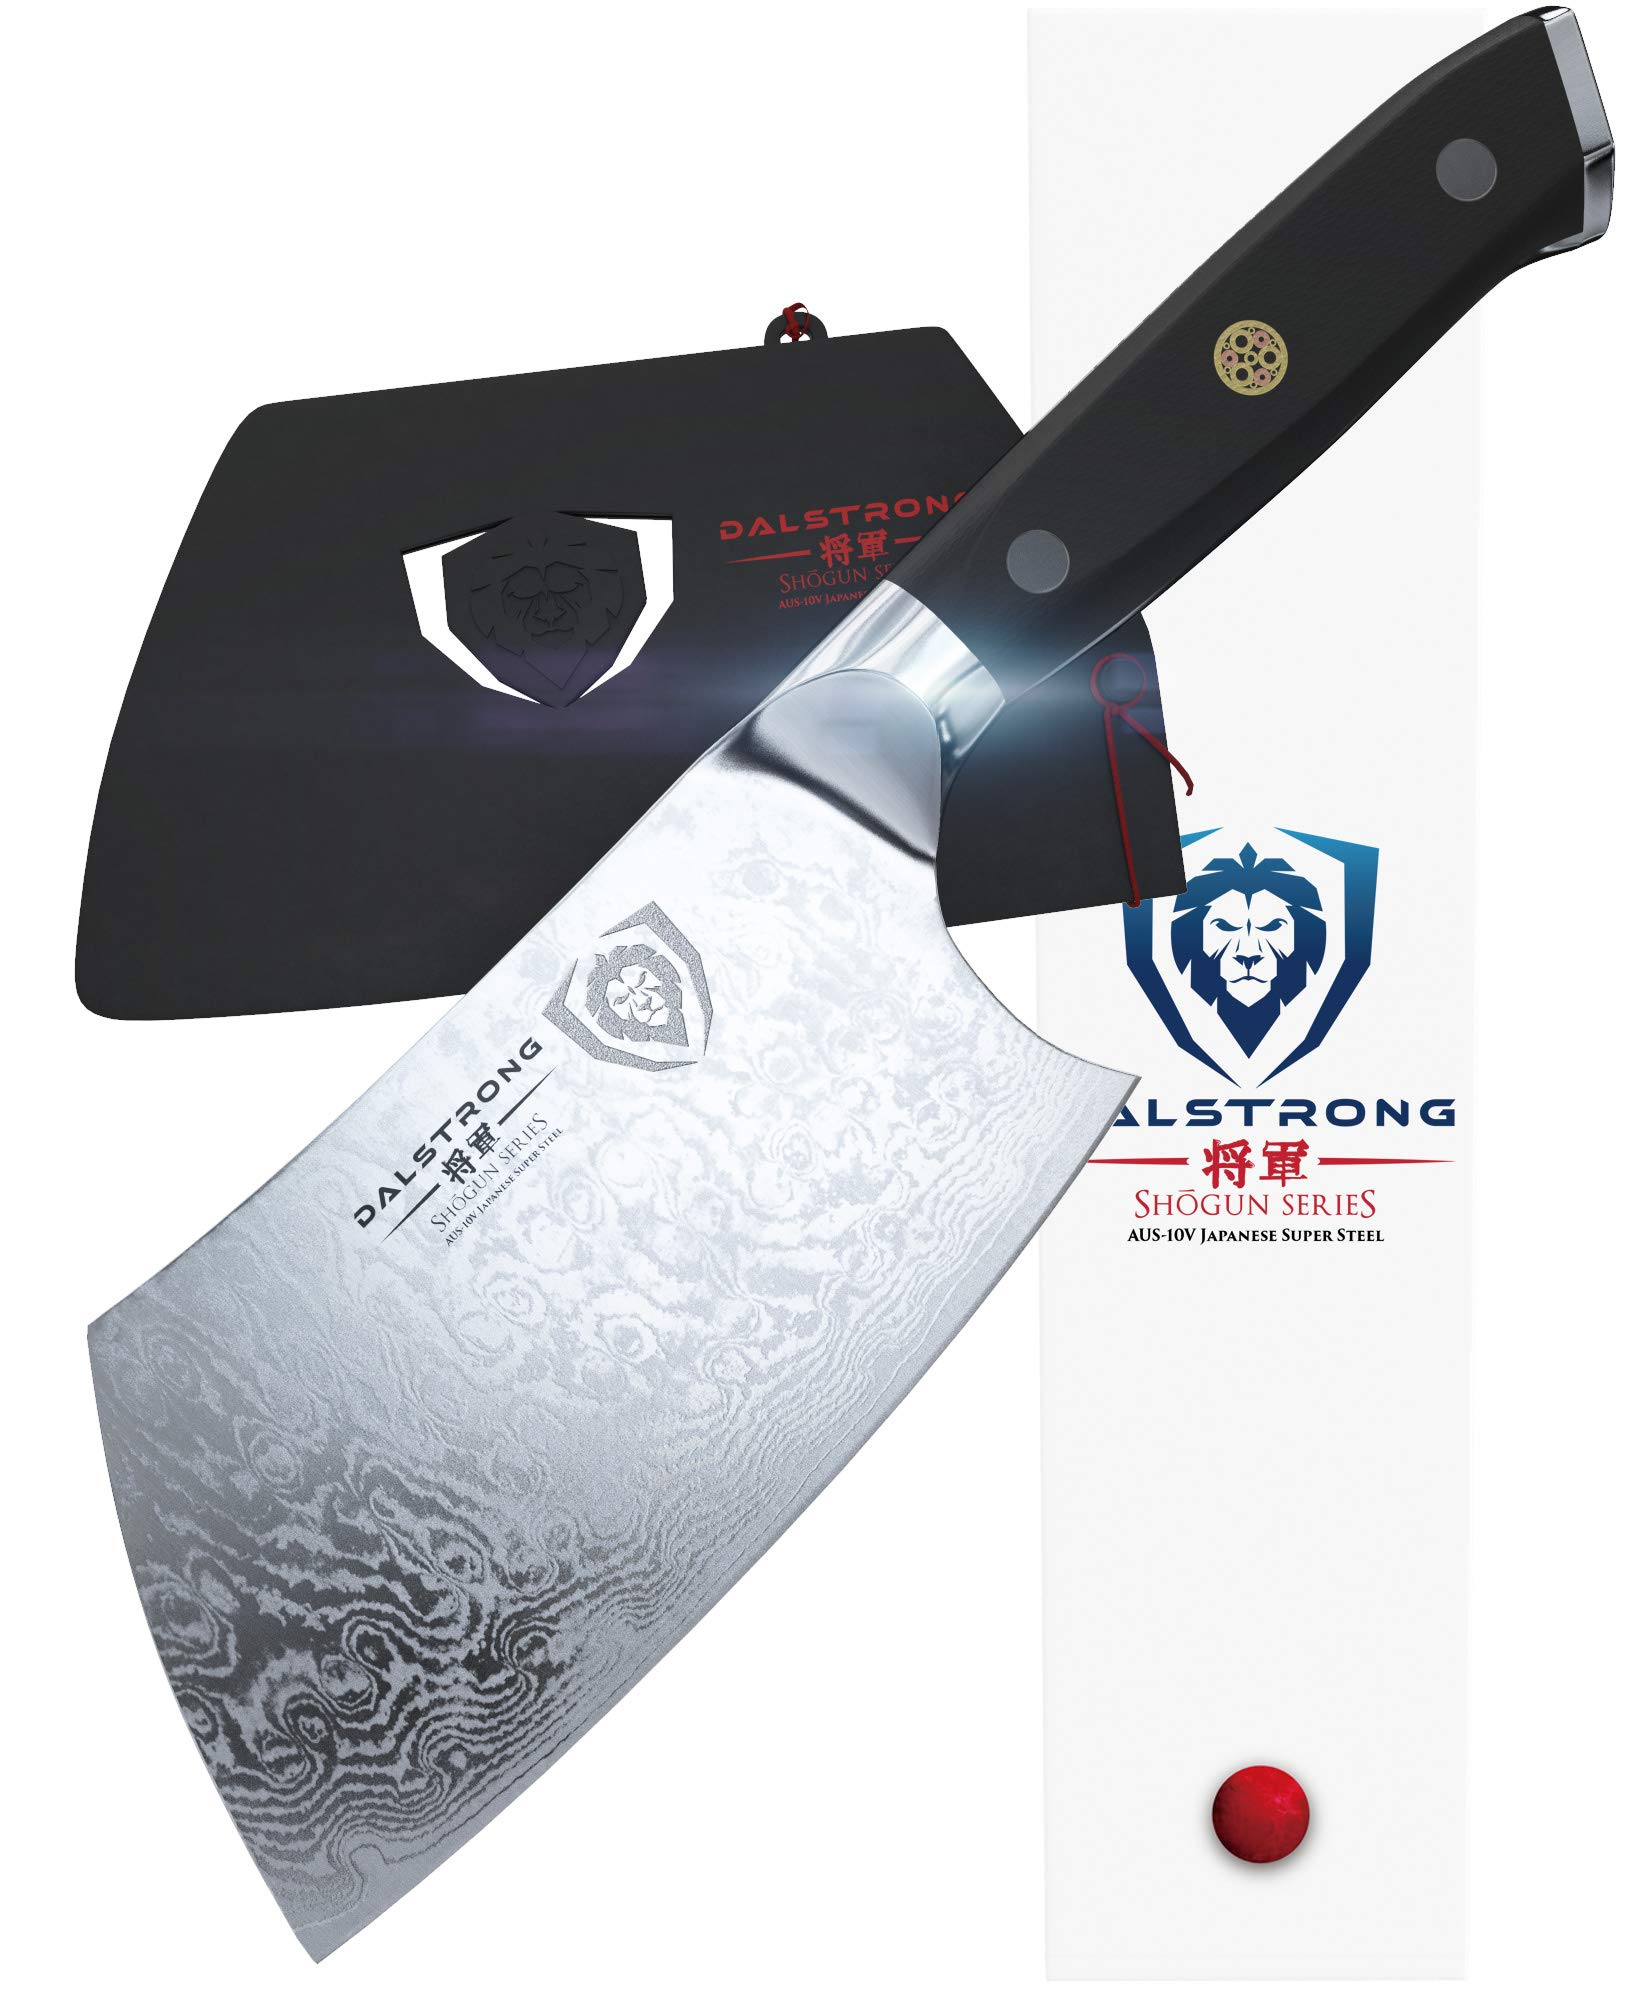 DALSTRONG - Shogun Series 4.5'' Mini Cleaver - Japanese AUS-10V Super Steel - Vacuum Heat Treated by Dalstrong